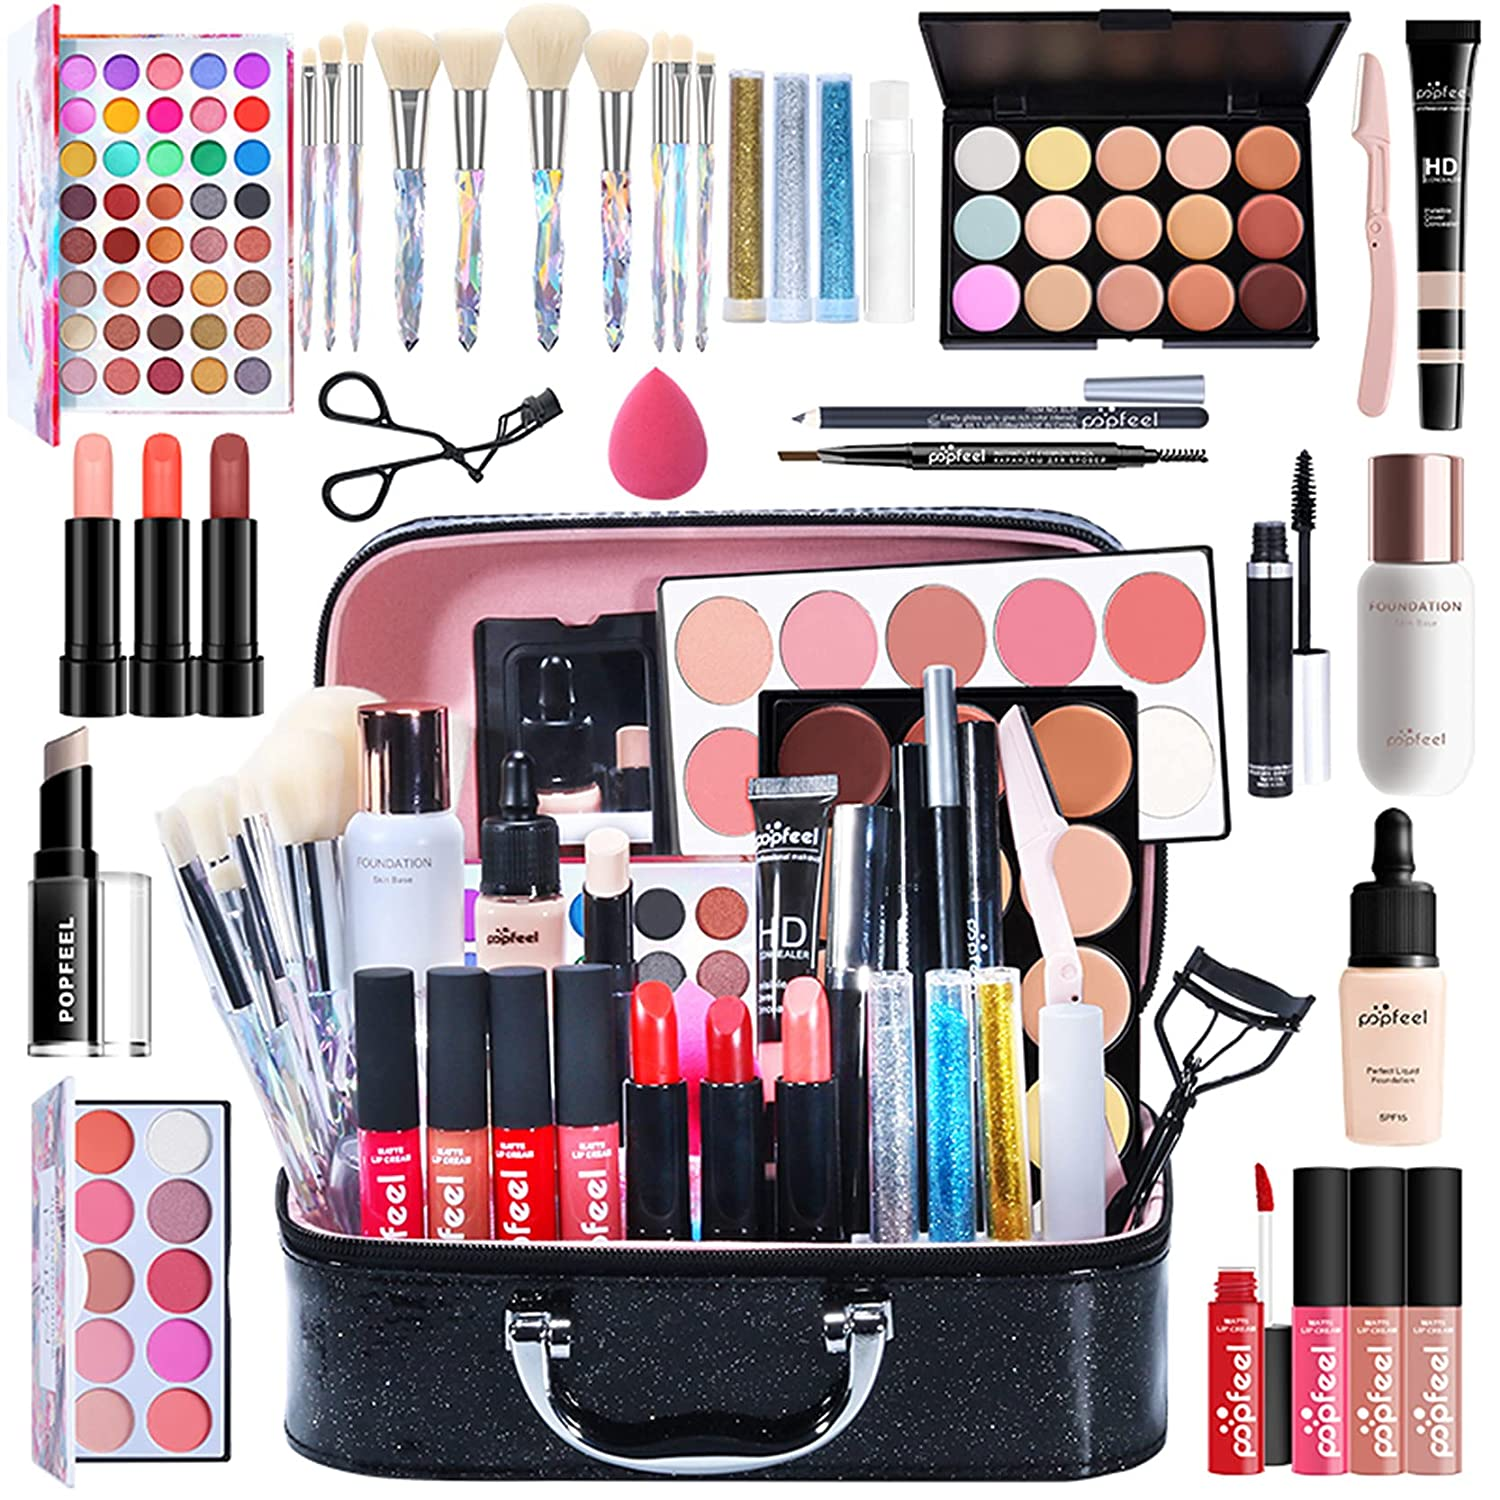 Which is the best brand for makeup kit?